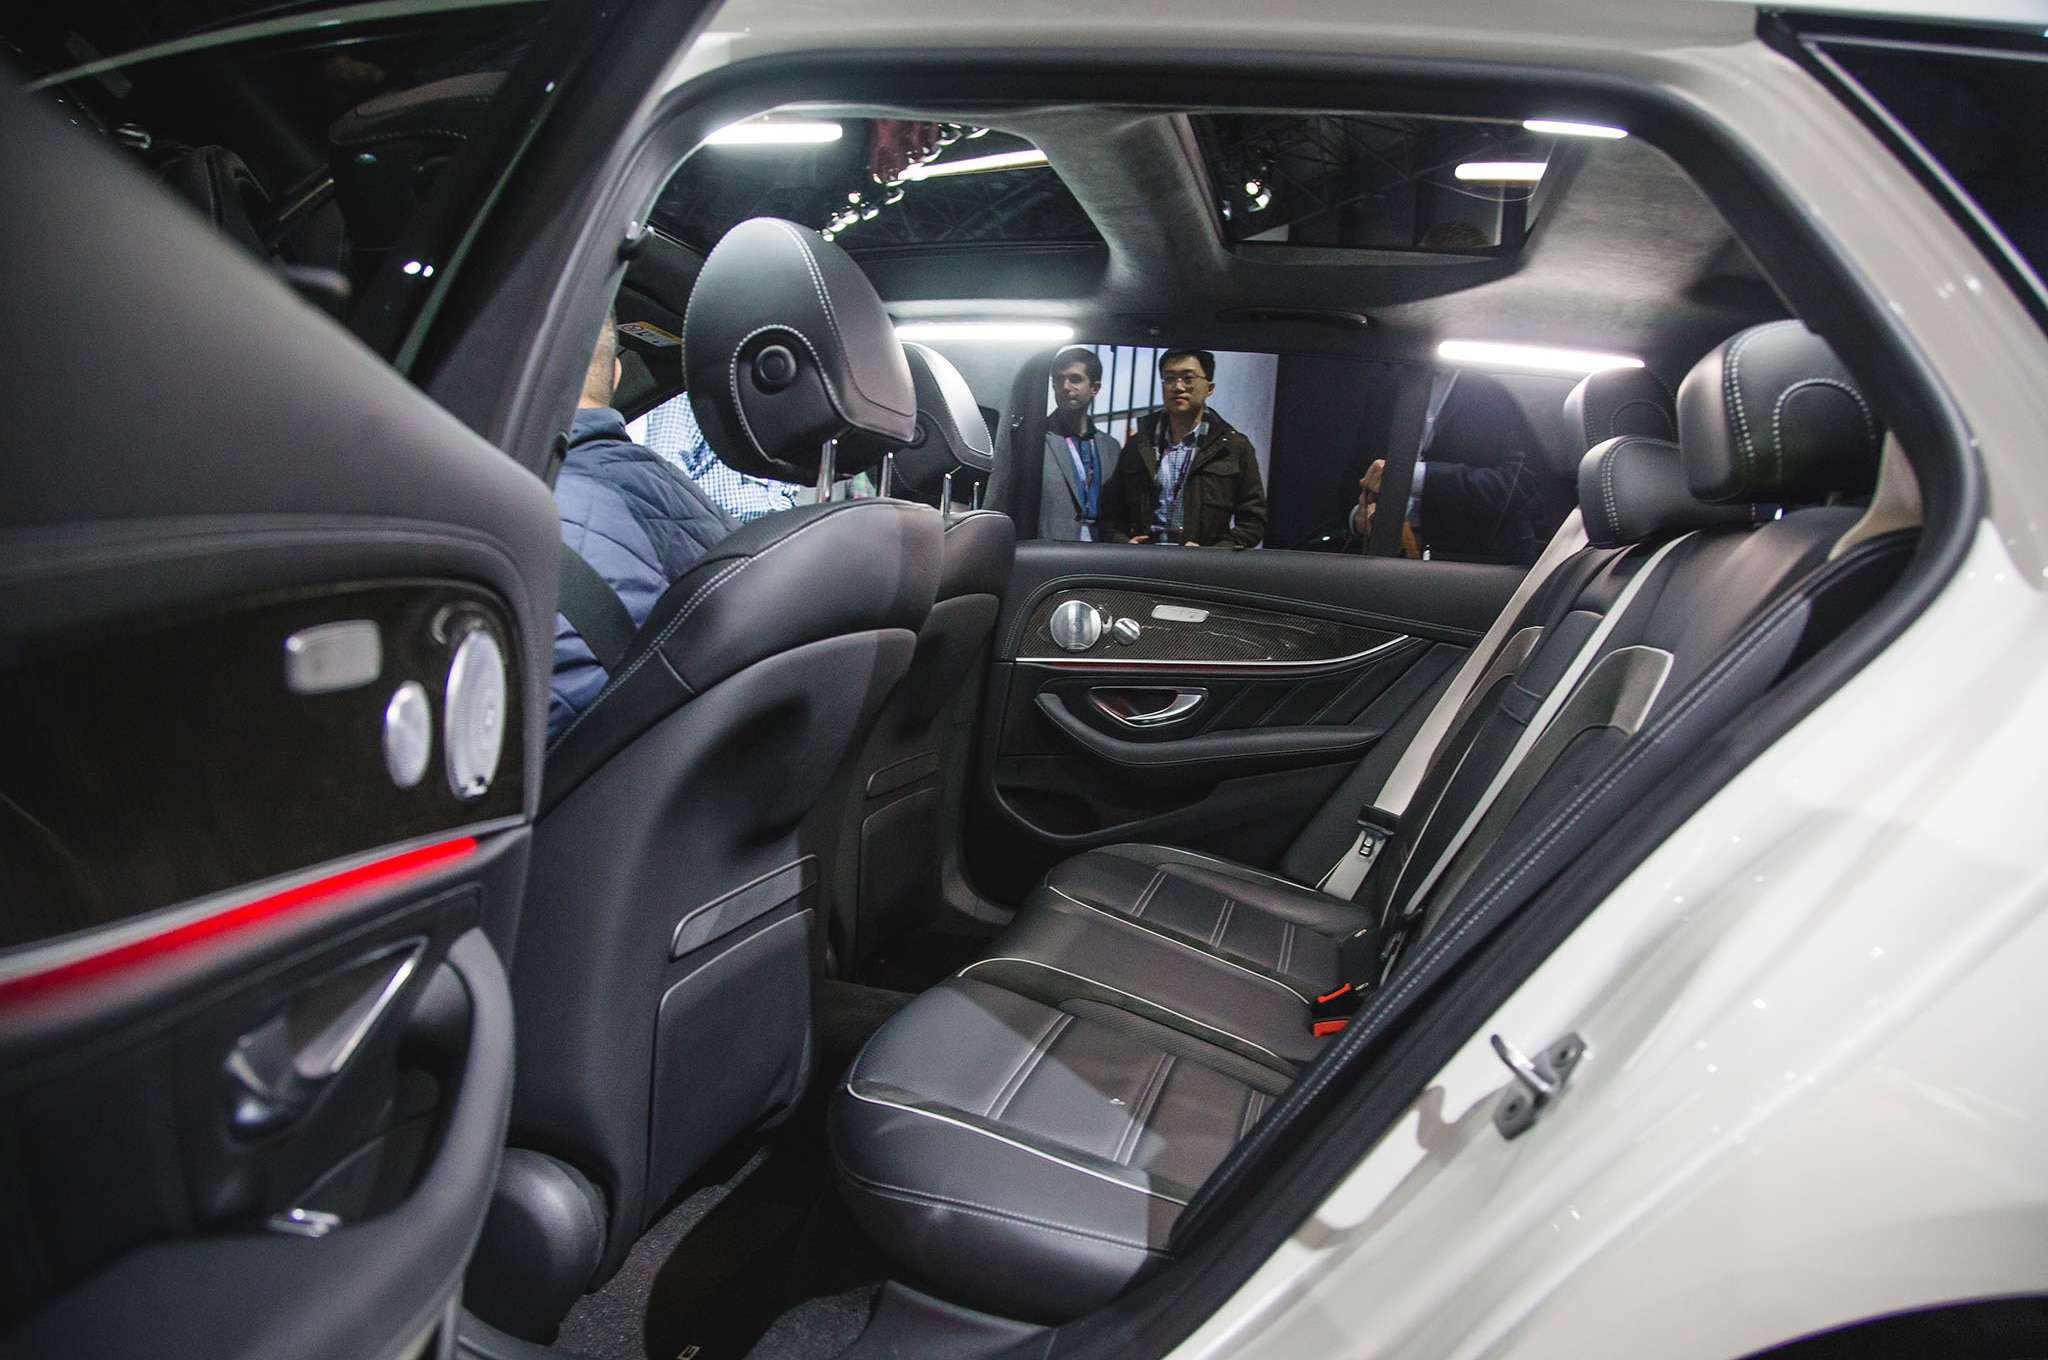 https://st.automobilemag.com/uploads/sites/11/2017/04/2018-Mercedes-AMG-E63-S-Wagon-rear-seat.jpg